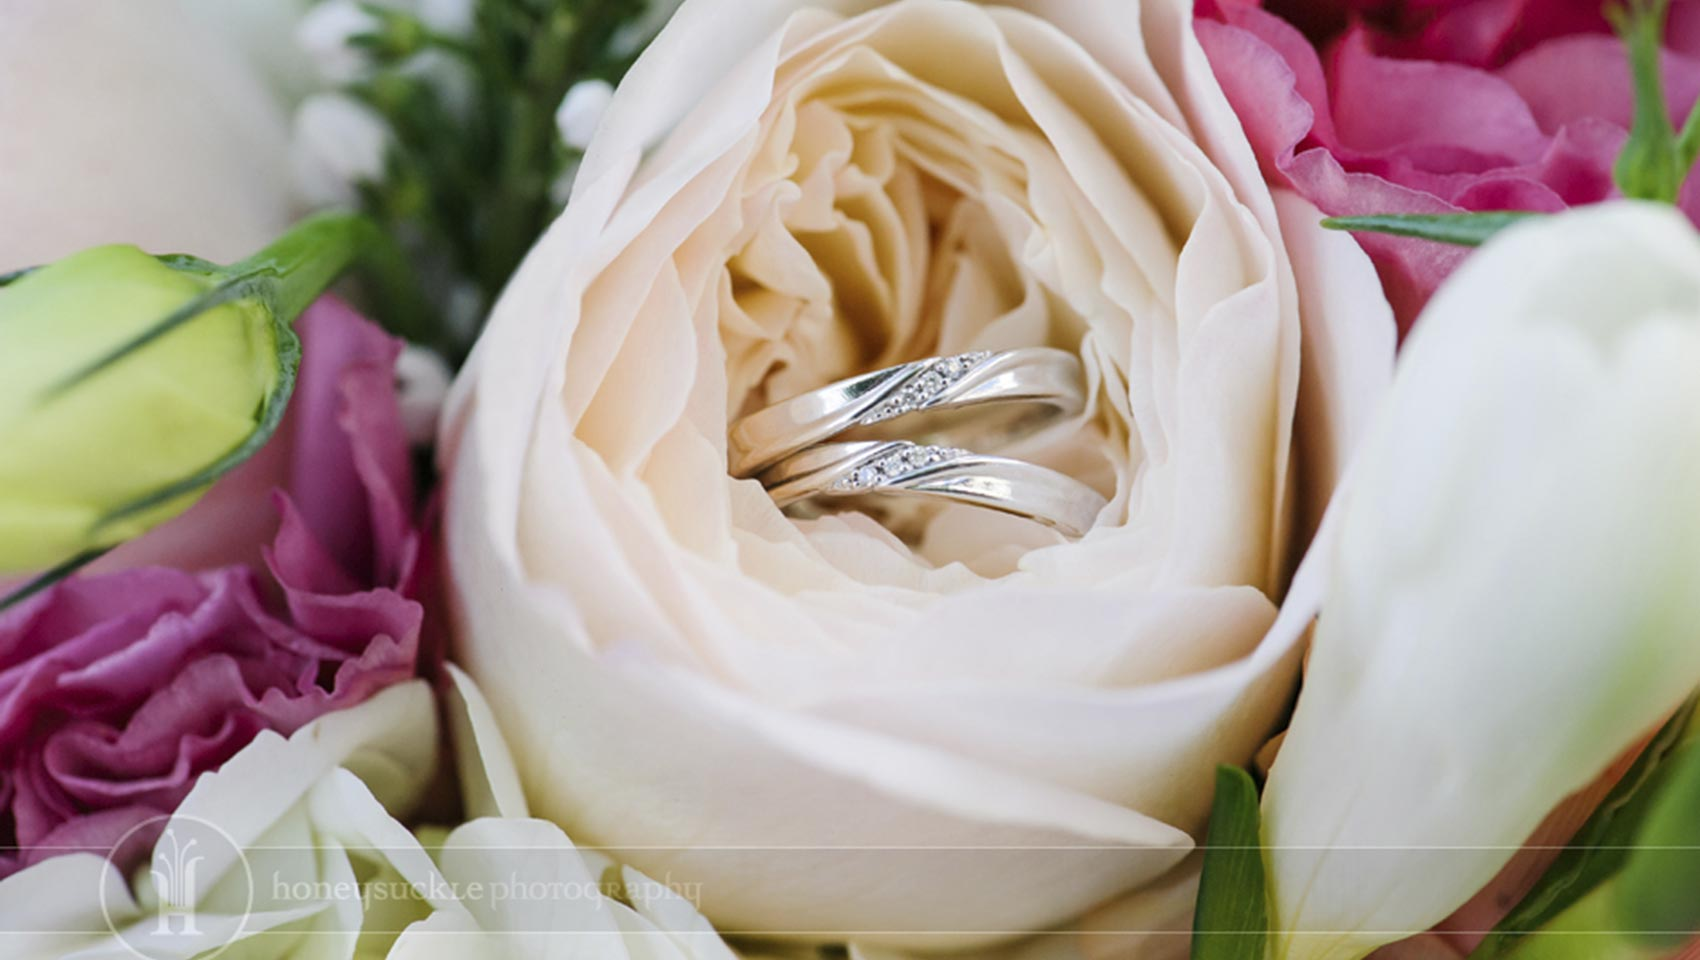 wedding rings nestled in white rose